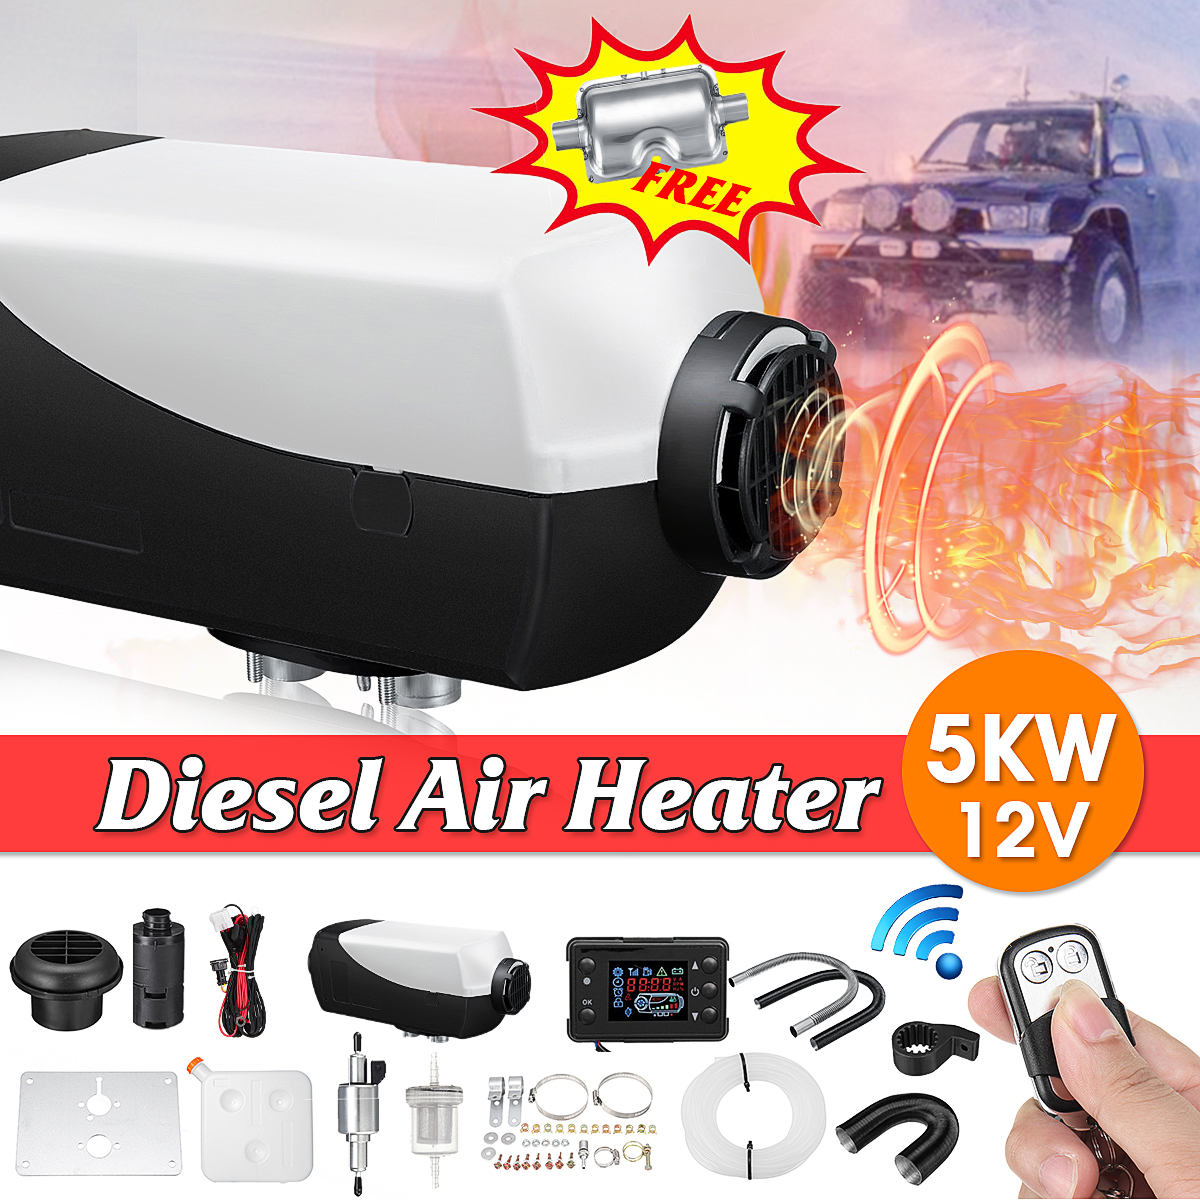 все цены на 5KW 12V Car Heater Air Diesels Heater Parking Heater With Remote Riscaldatore LCD Monitor Silencer 10L Tank For Trucks Boats Bus онлайн